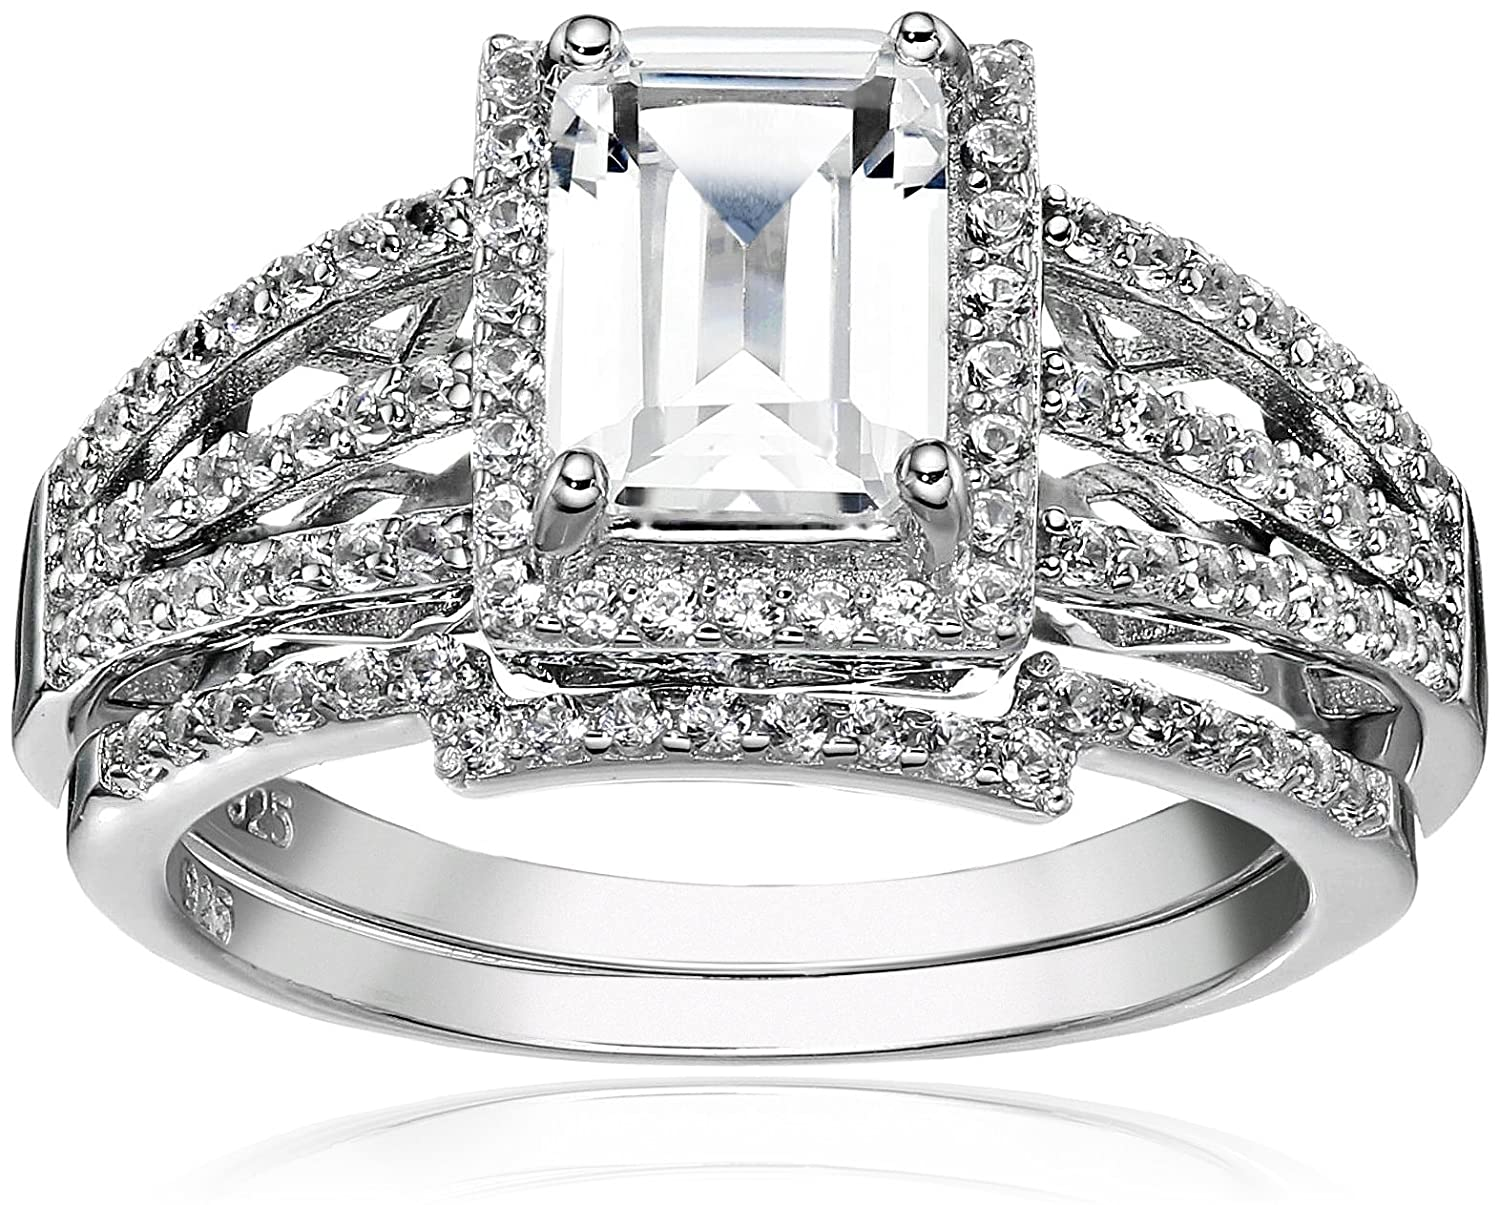 c2c37ce27cc84 Sterling Silver Created White Sapphire Emerald Cut Halo Engagement ...